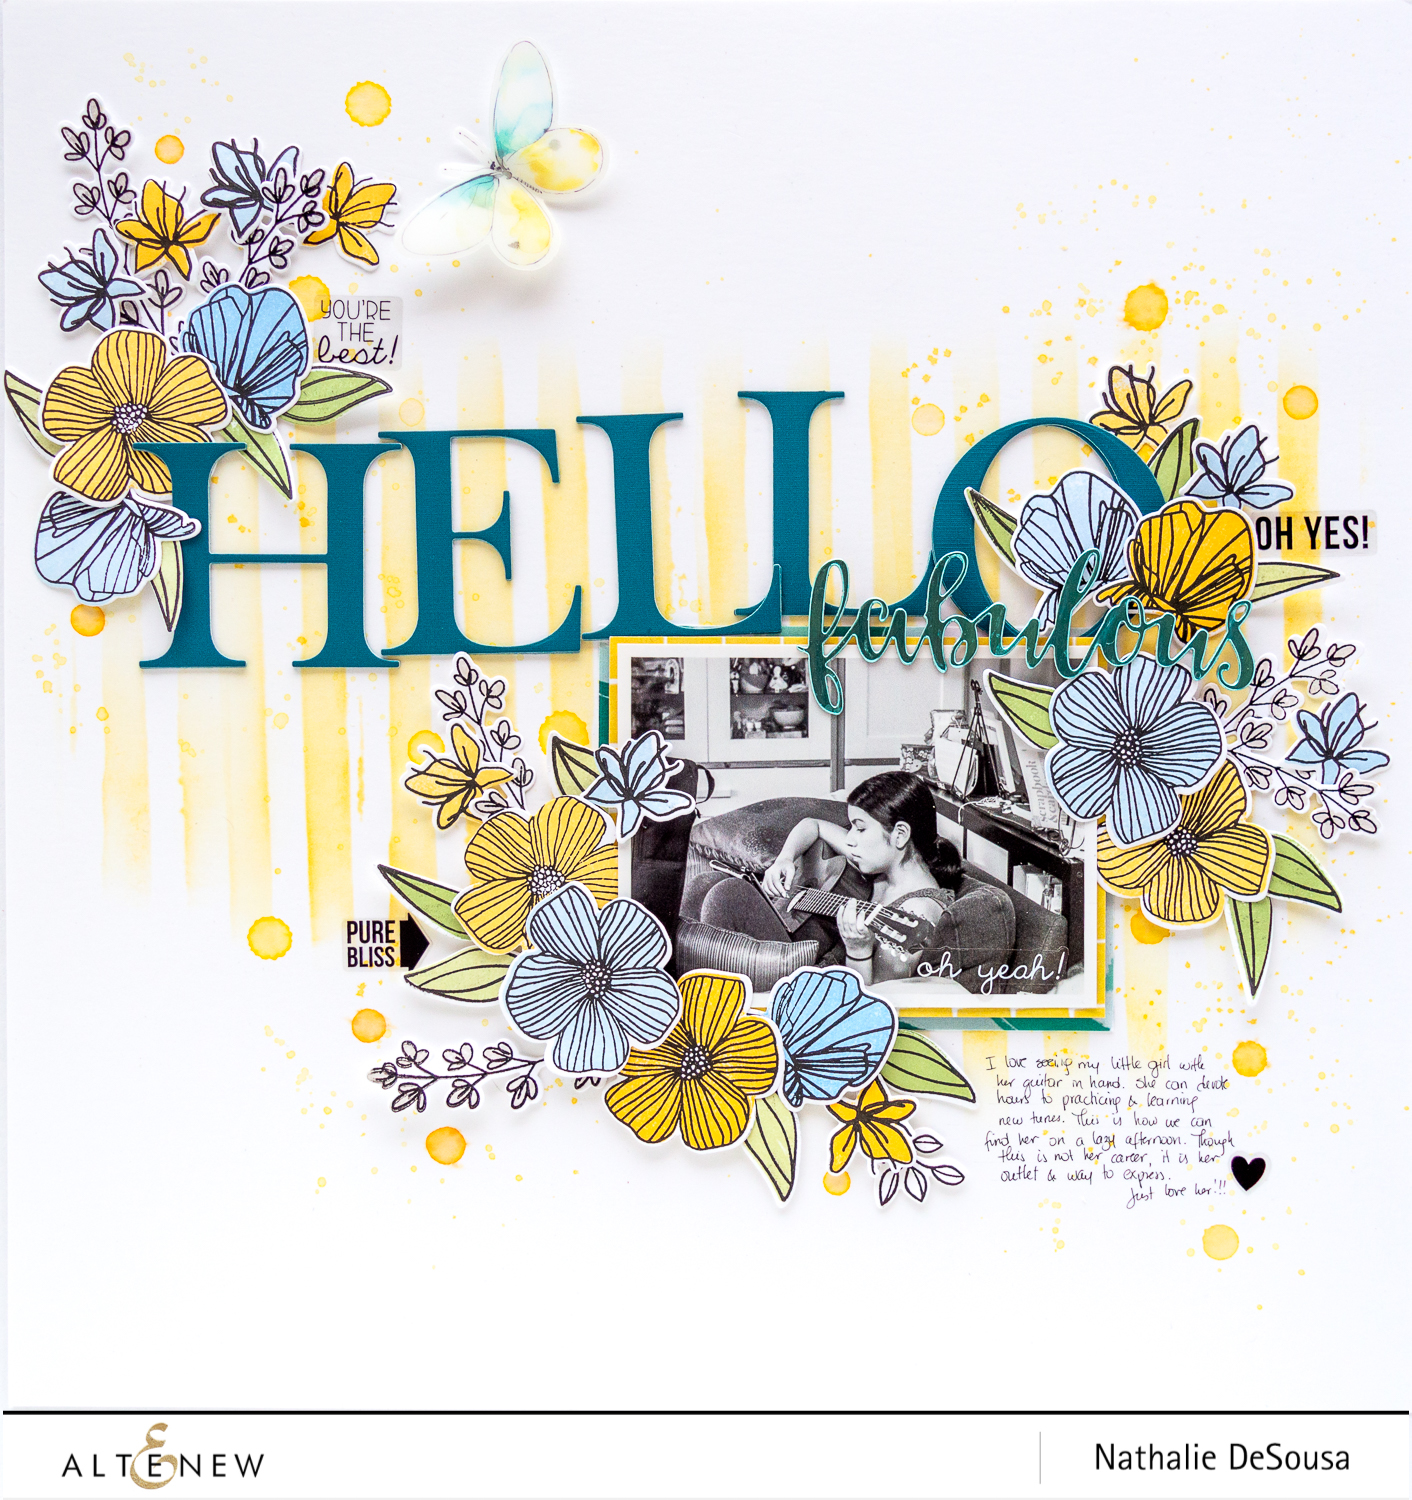 Combining simple mixed media with the Charming Doodles Stamp and Die set -HELLO FABULOUS_by Nathalie DeSousa for @Altenew